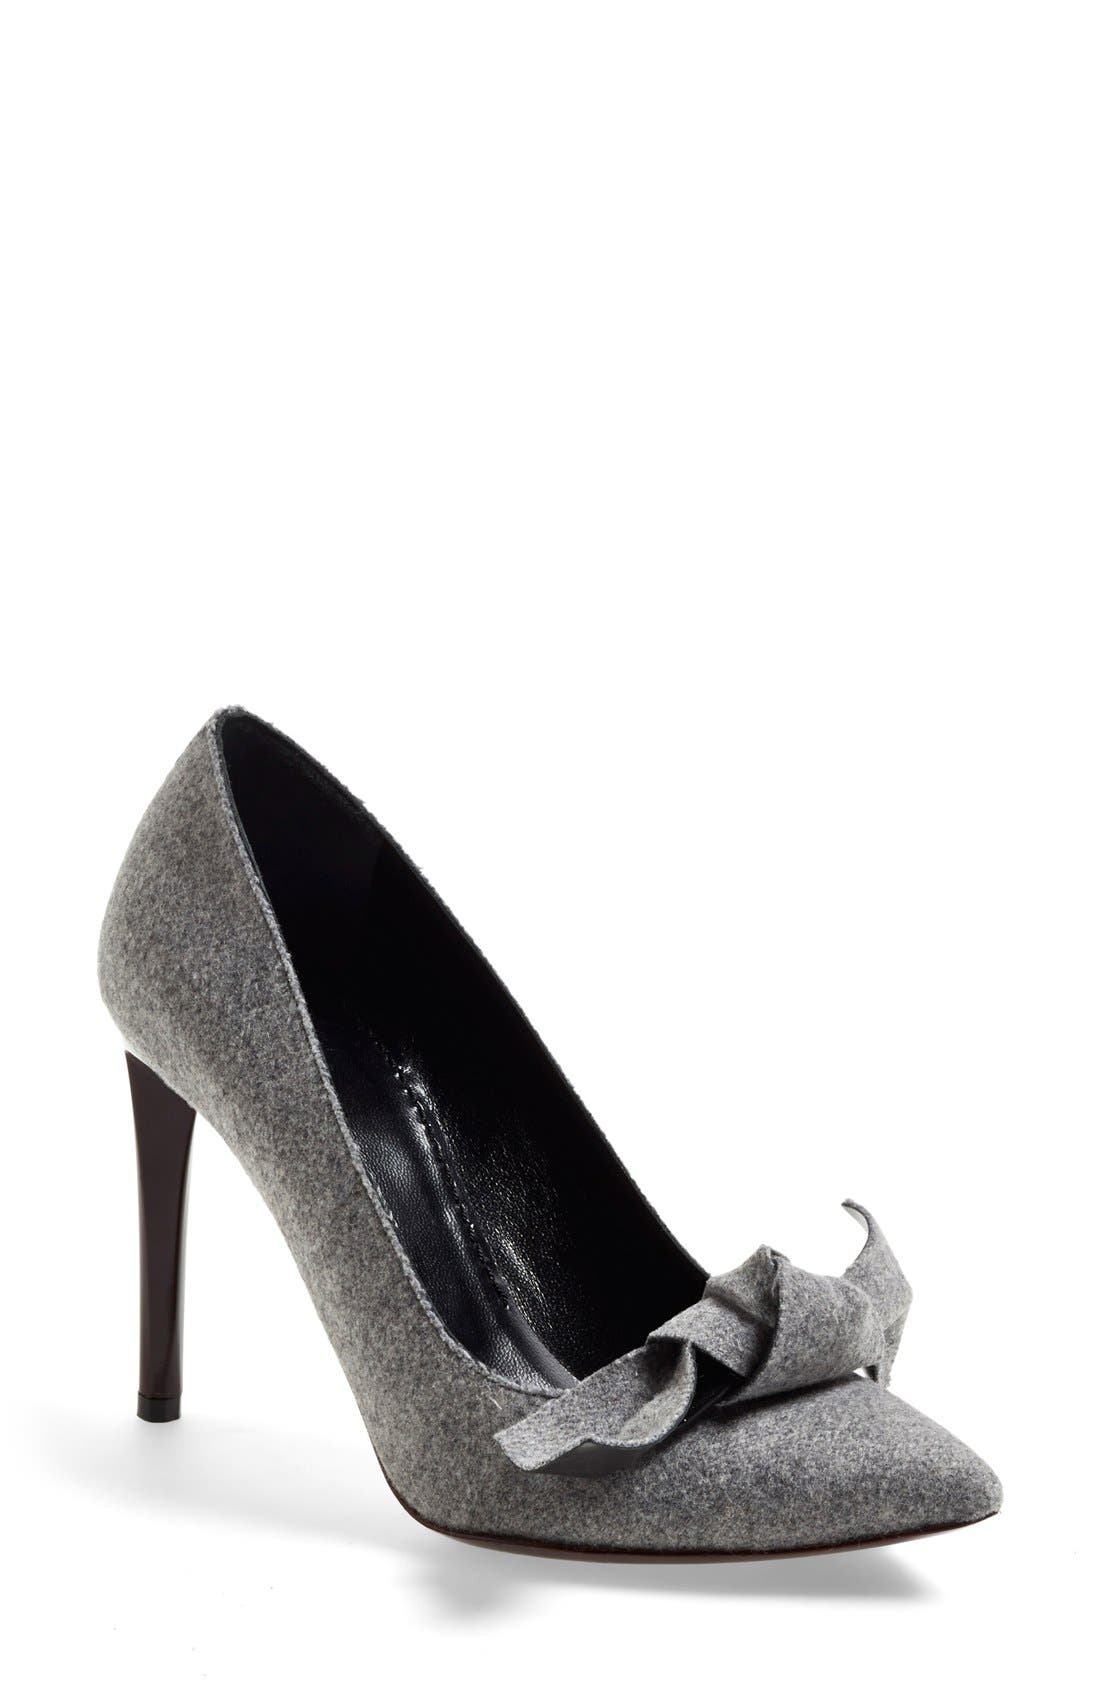 Alternate Image 1 Selected - Proenza Schouler Bow Pointy Toe Pump (Women)